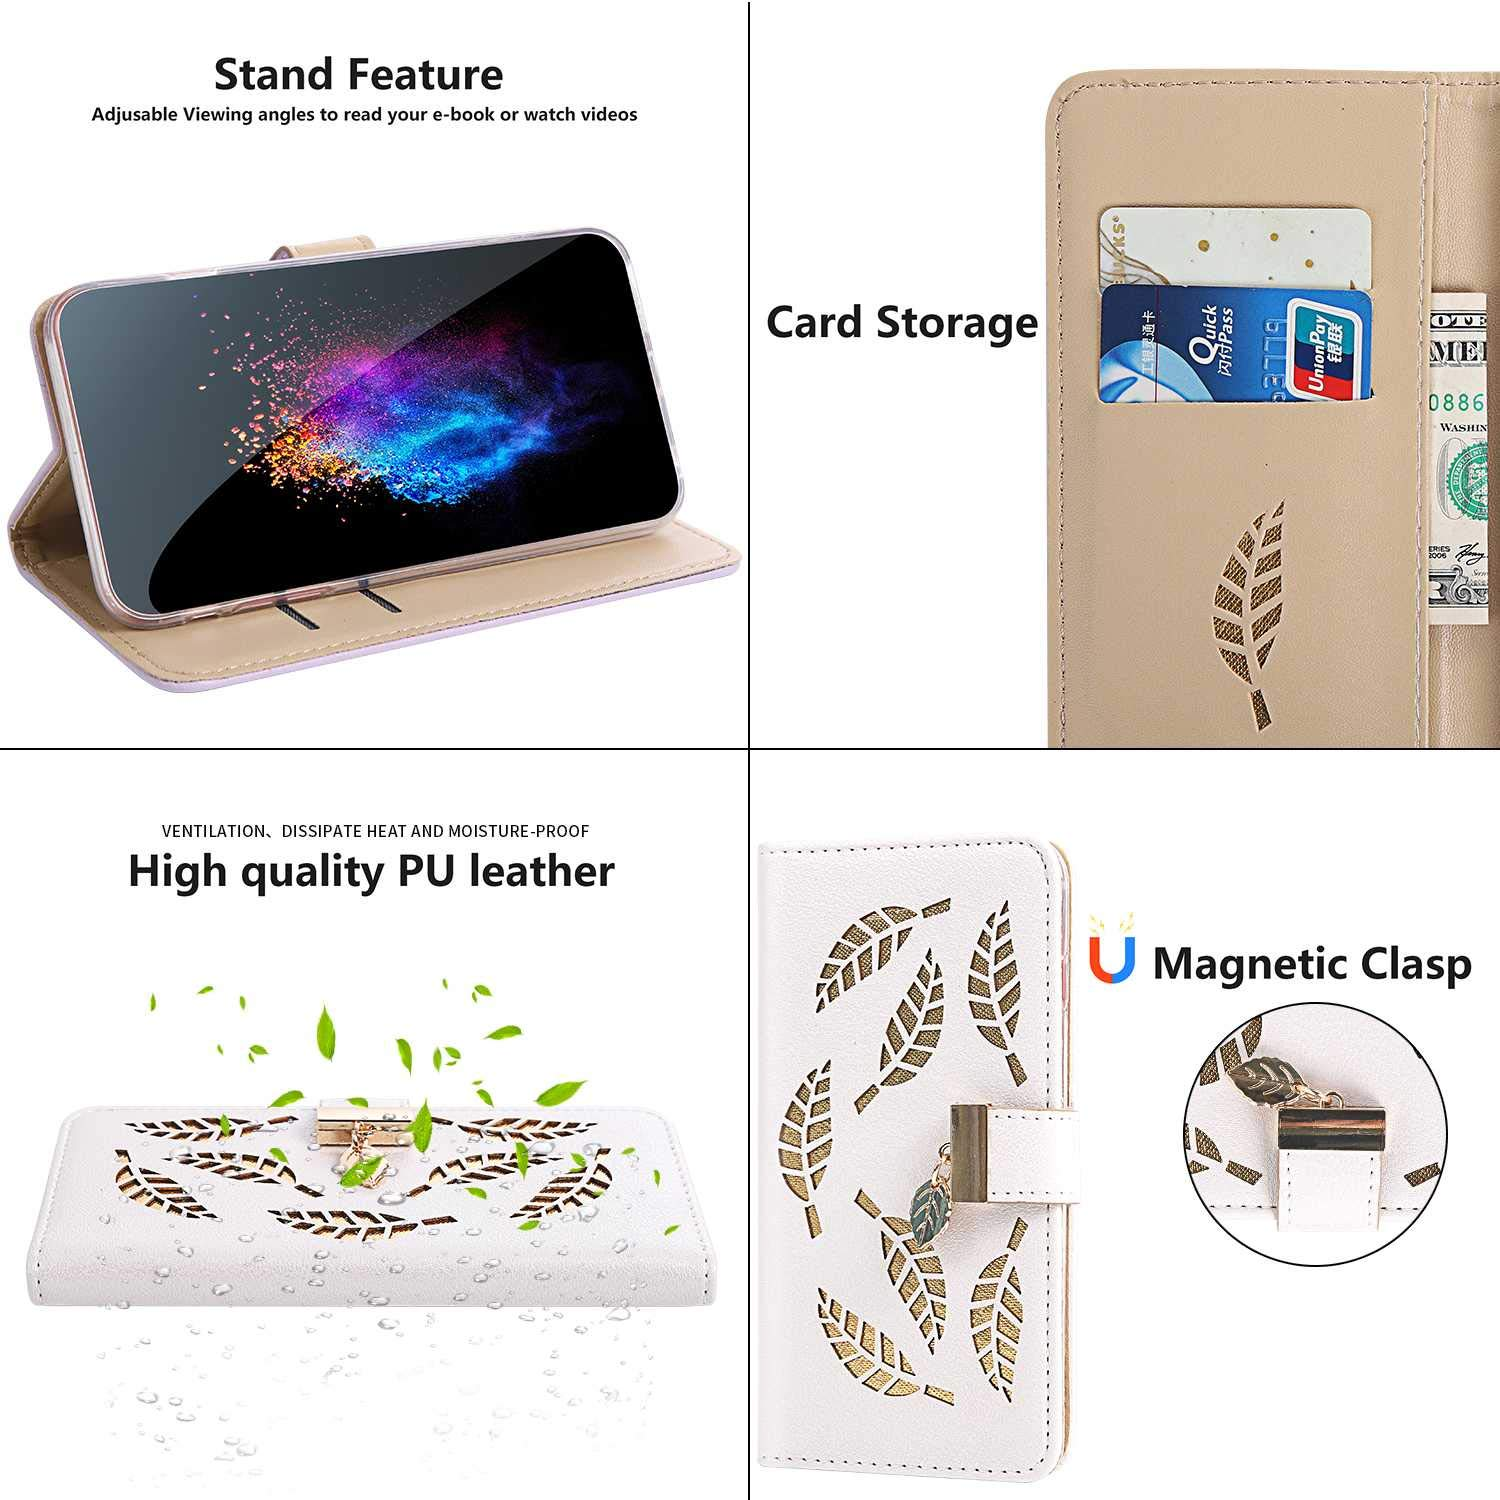 CUSKING Magnetic Wallet iPhone 7 // iPhone 8 Case Book Style Full Body Protective Case PU Leather Cover for Apple iPhone 7 // iPhone 8 with Card Slot Black